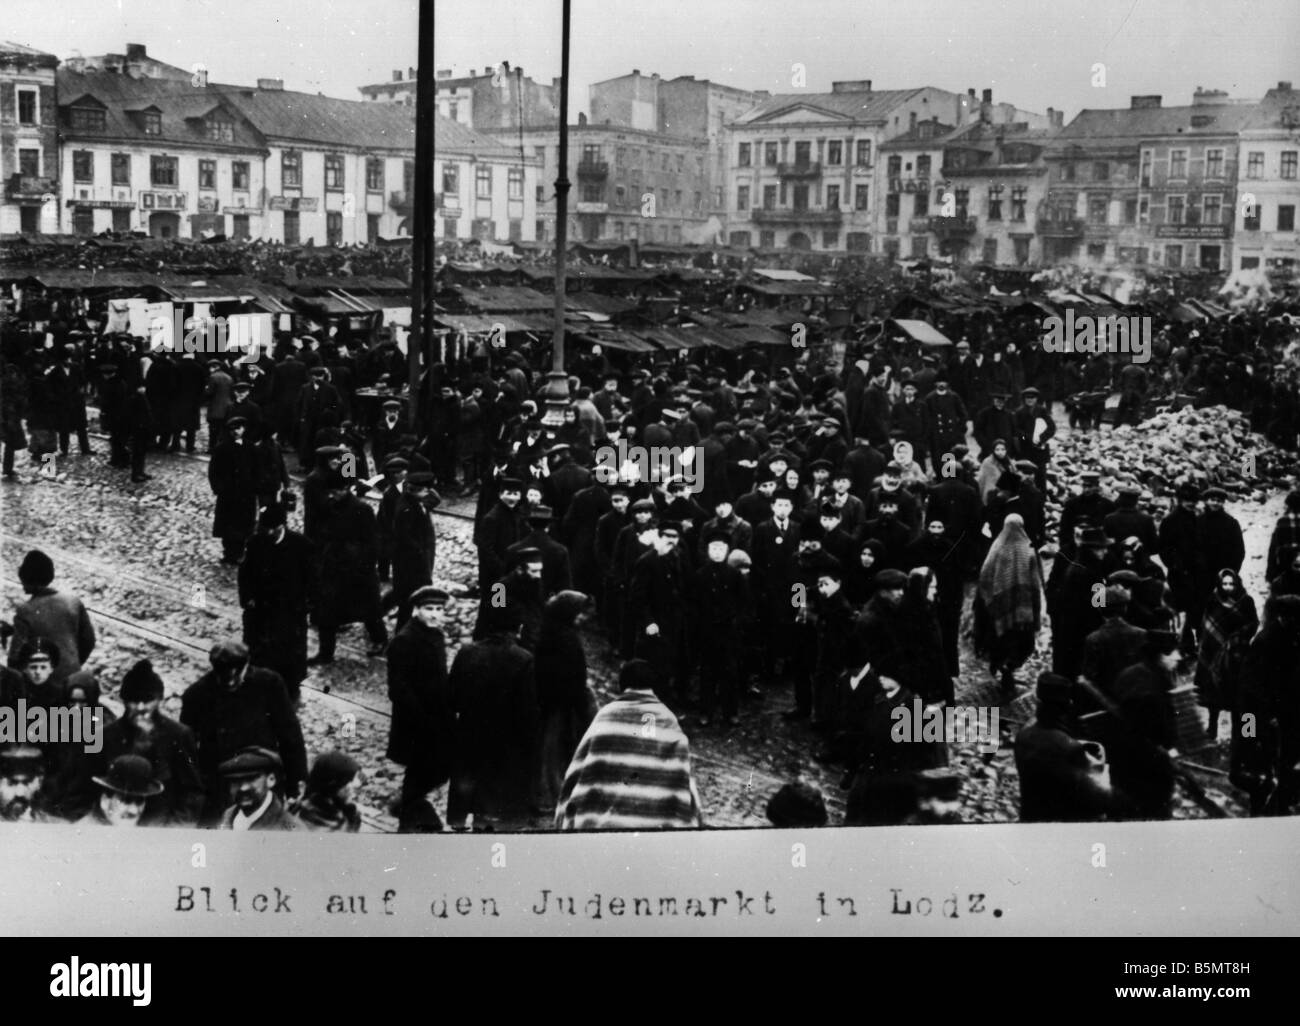 9IS 1915 0 0 A1 50 Jewish market in Lodz Photo 1915 History of Judaism Eastern Jews View of the Jewish market in - Stock Image